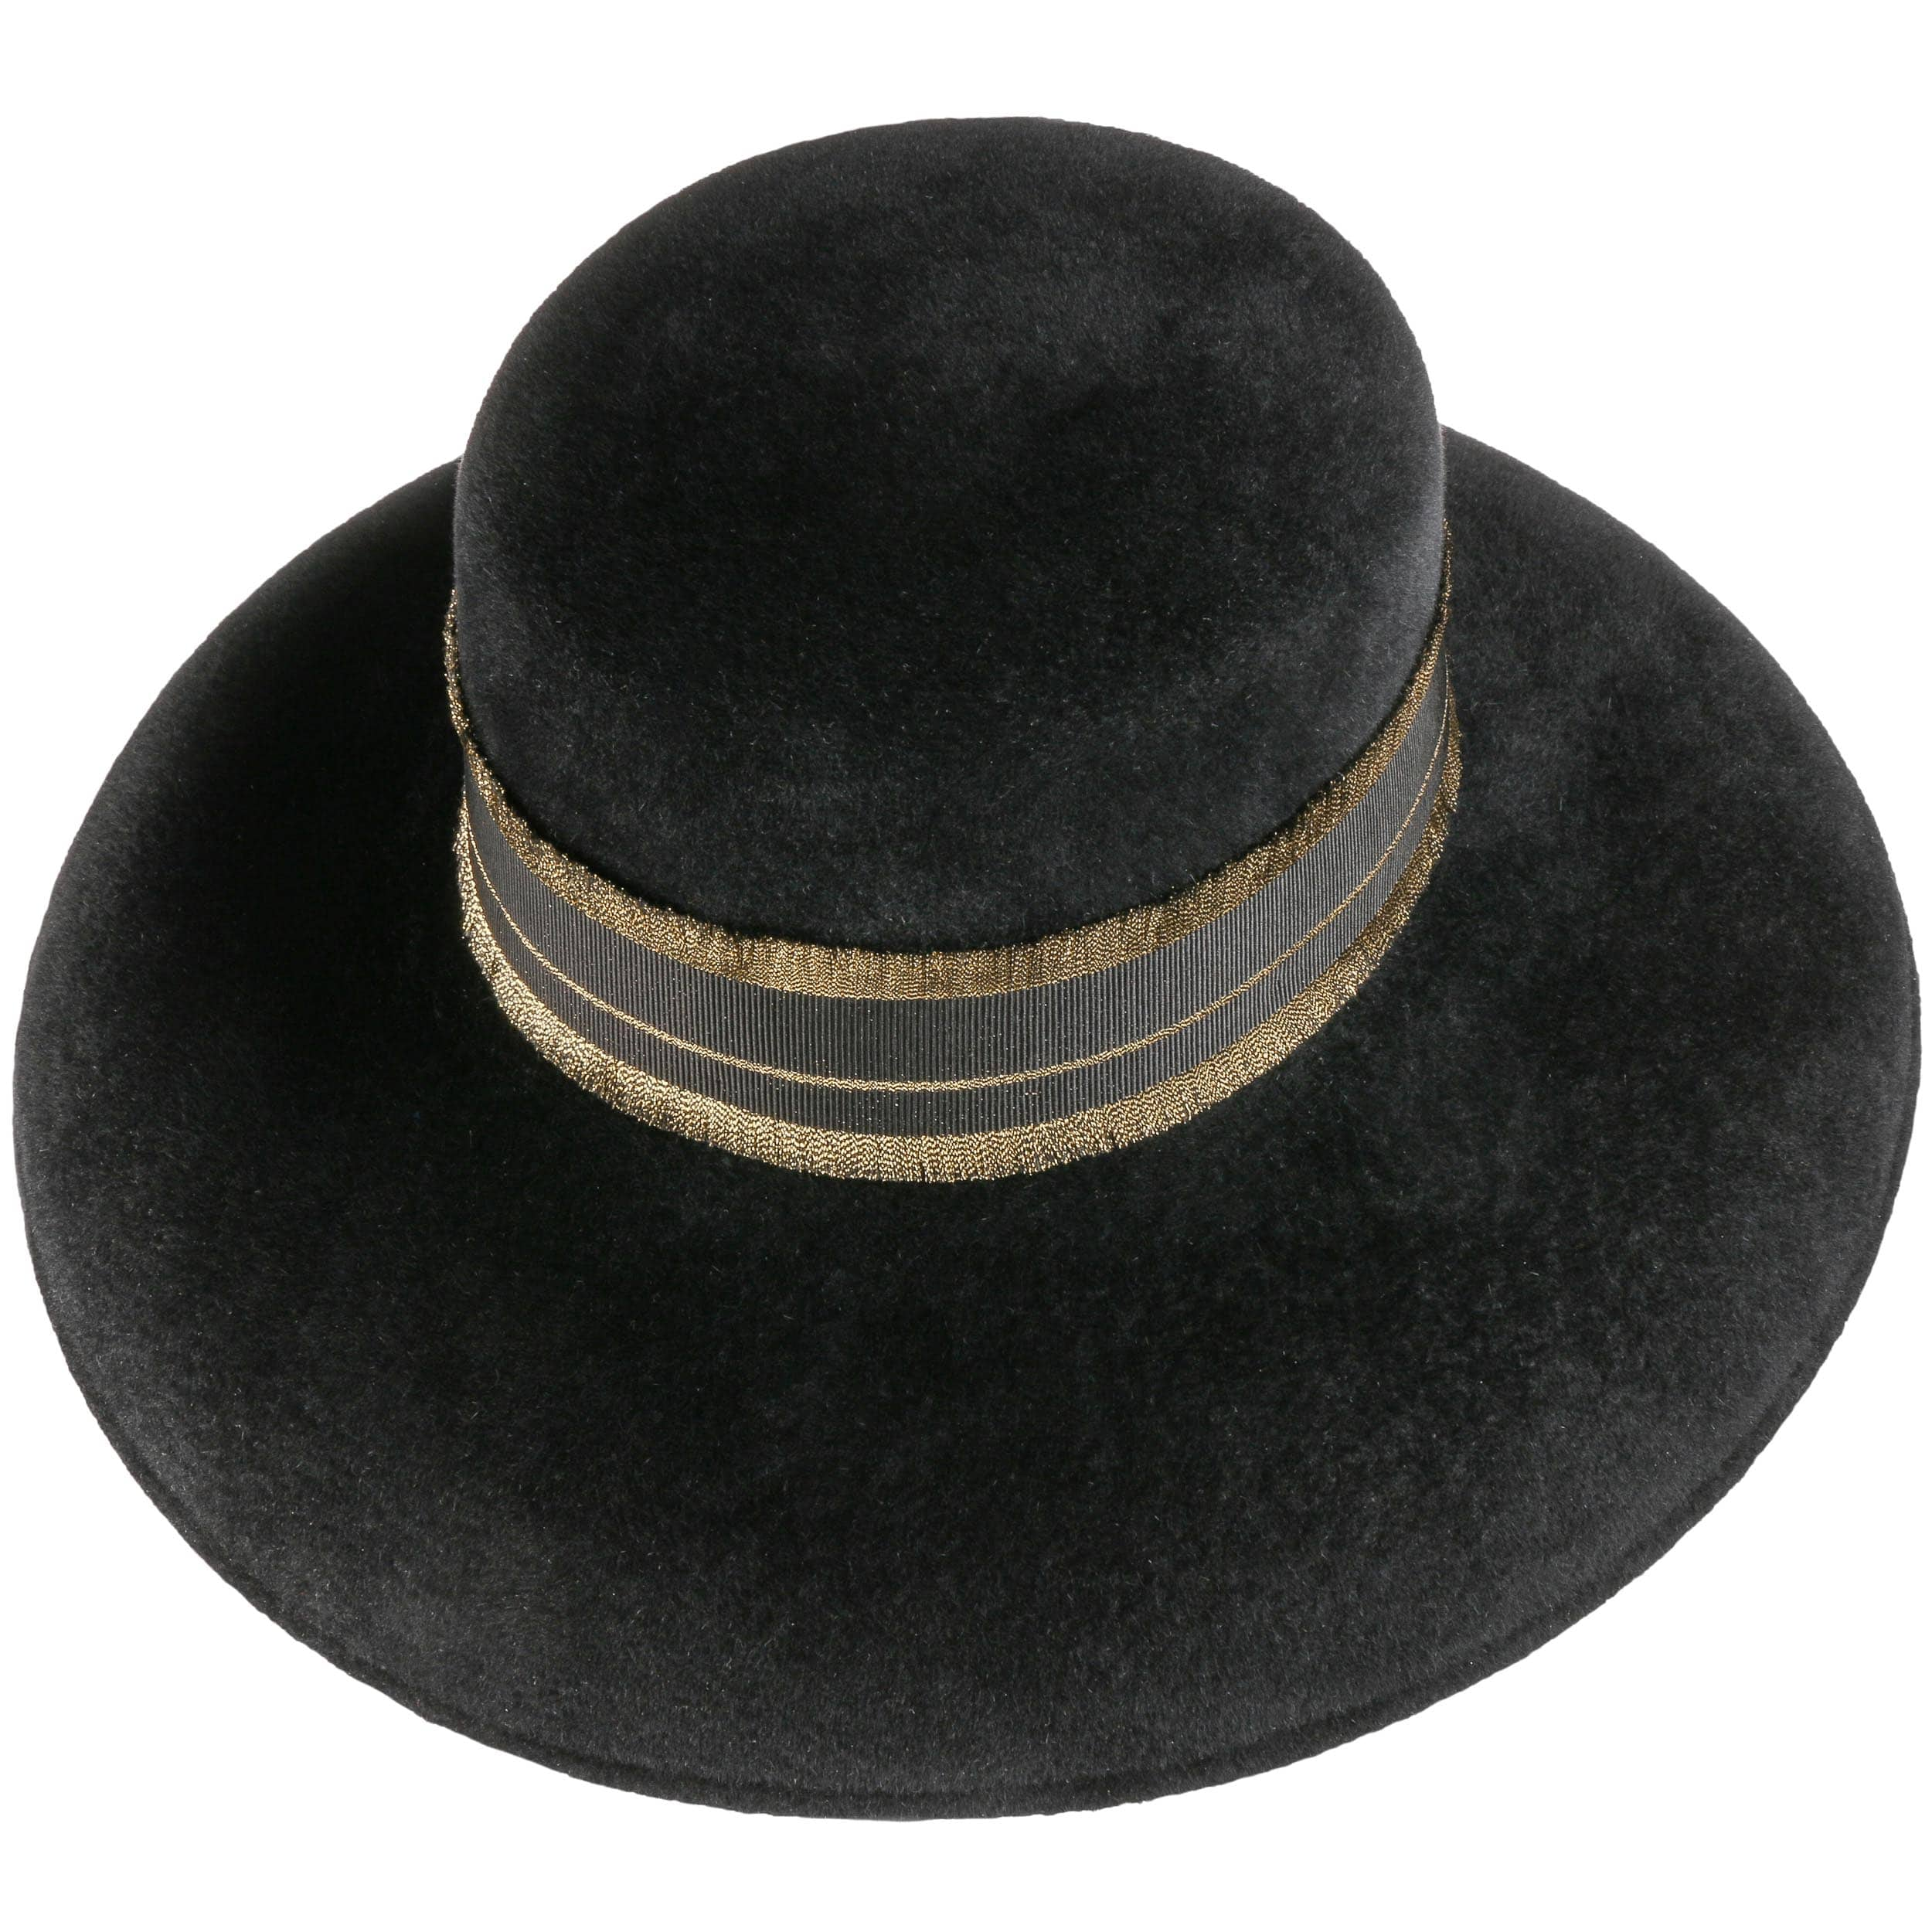 Golden Audrey Fur Felt Hat by Borsalino - black 1 ... 6921a6cfe2f